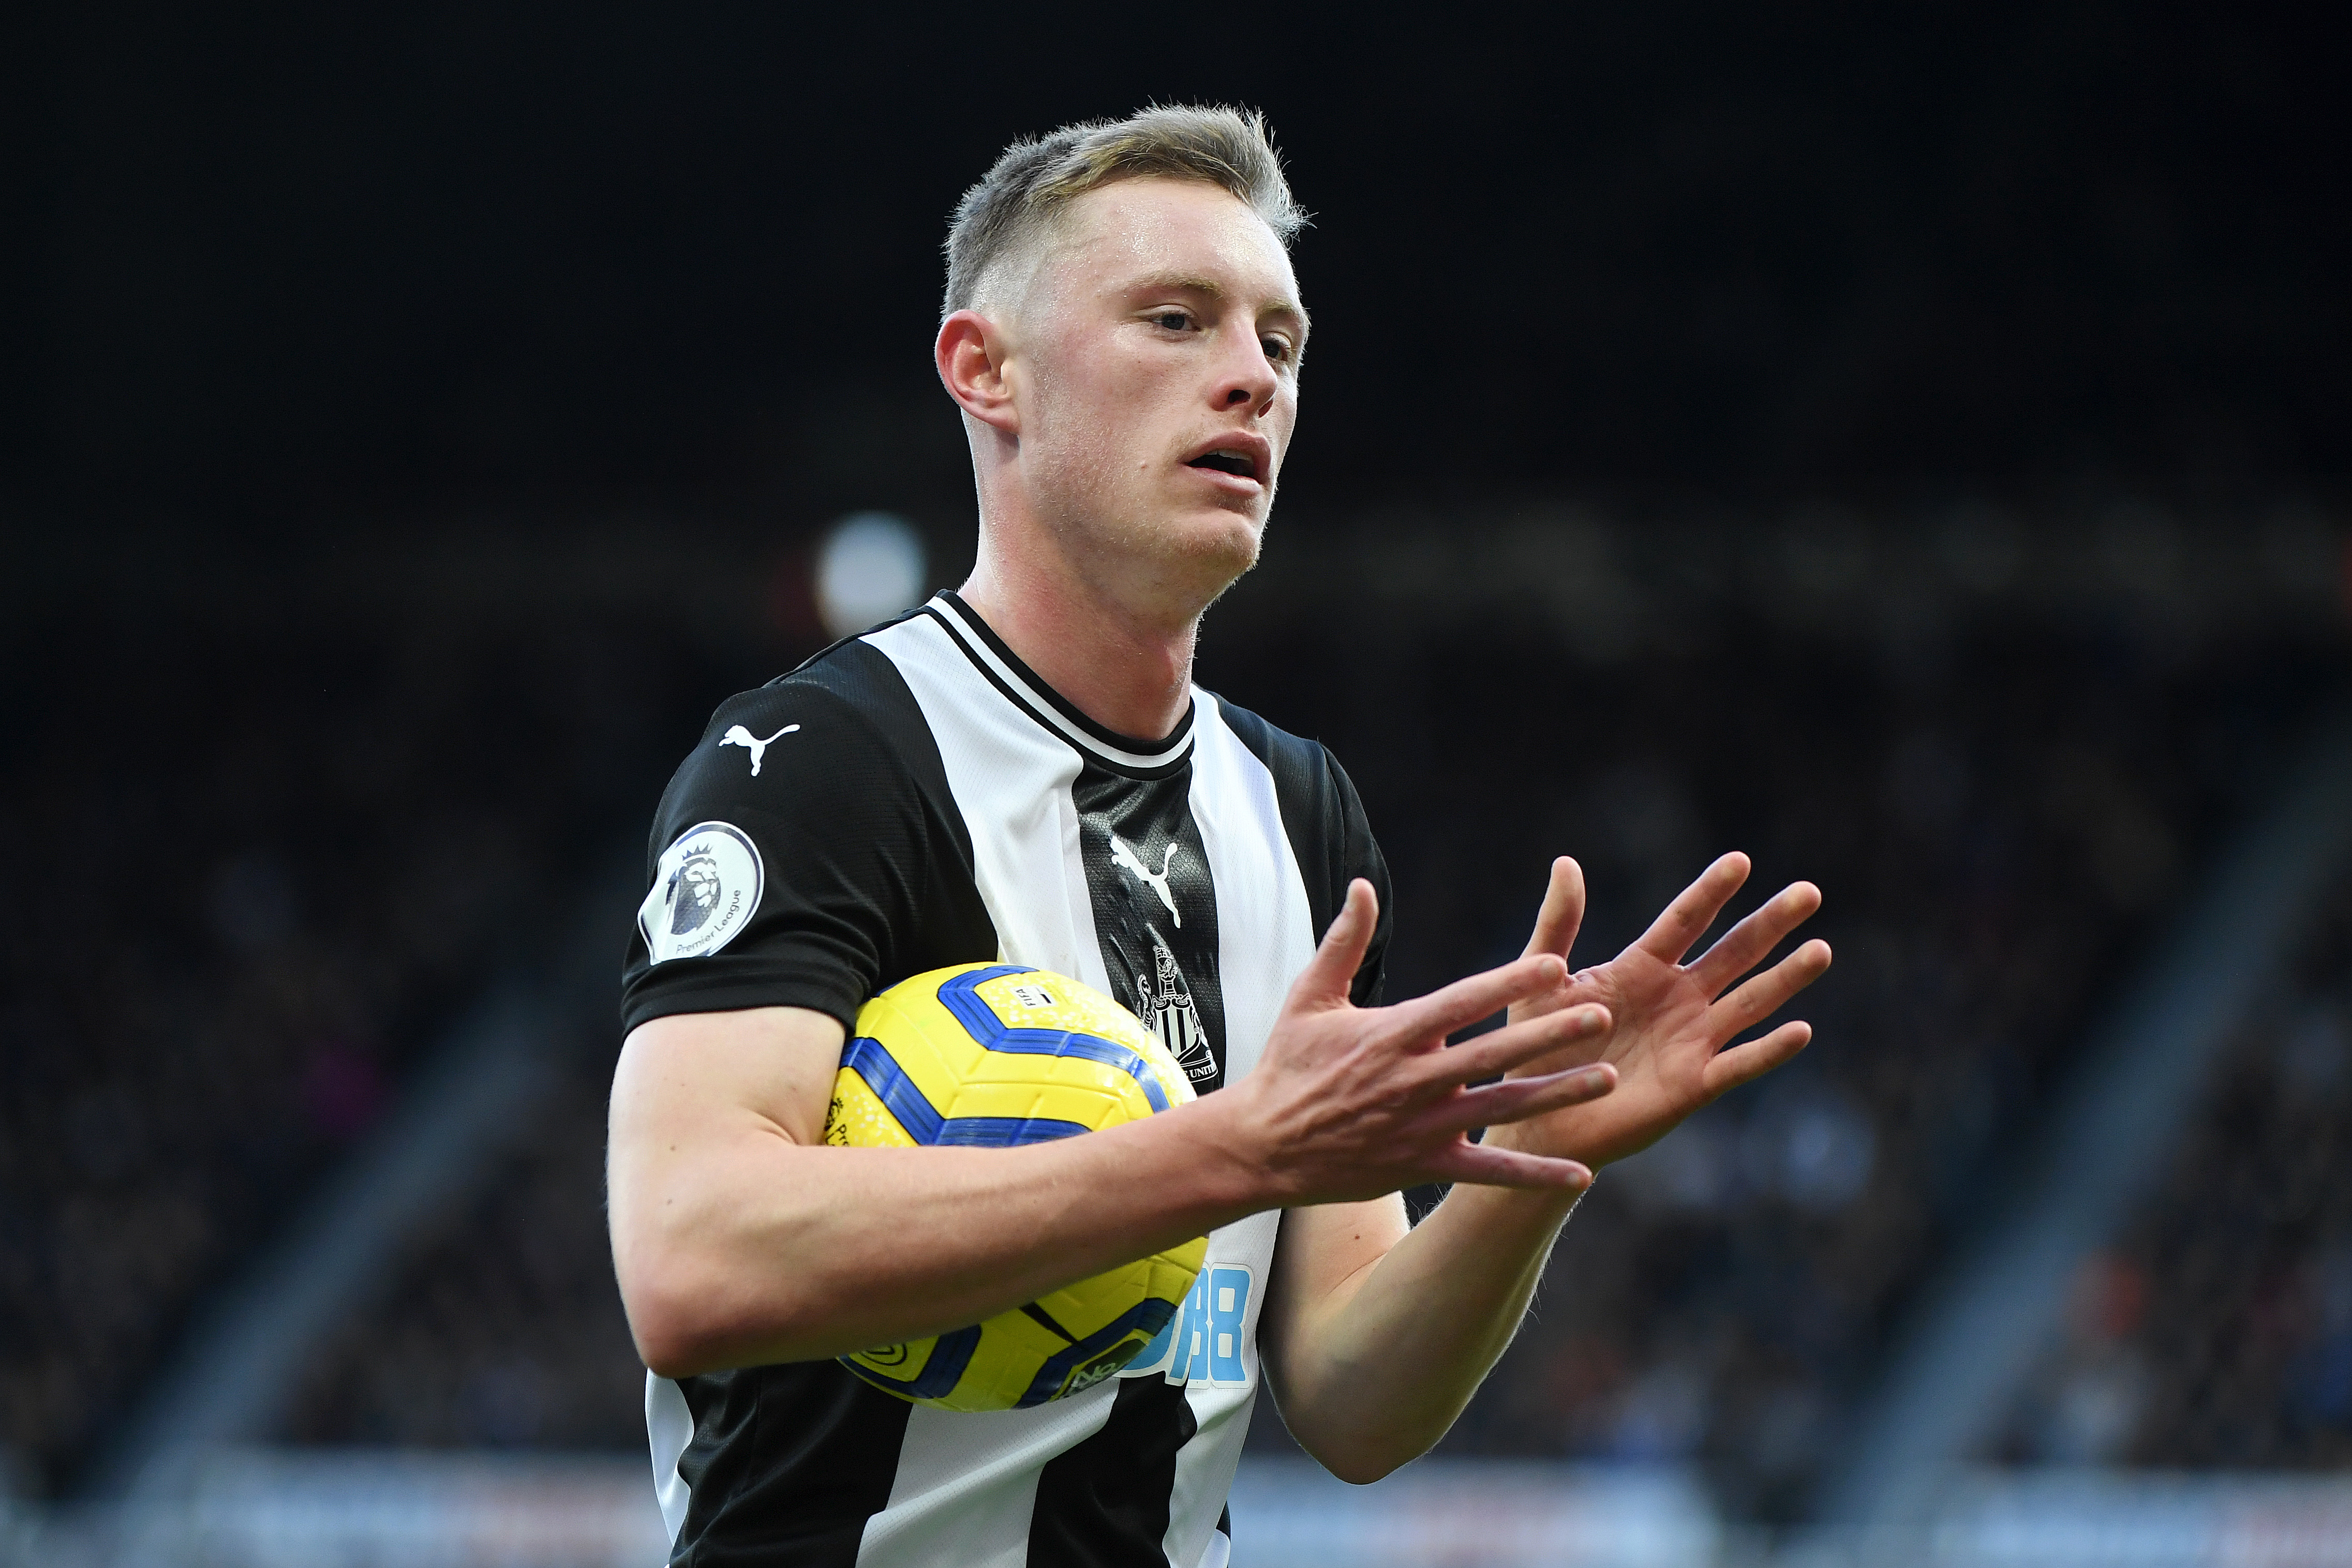 Sean Longstaff is back after serving his suspension (Photo by Mark Runnacles/Getty Images)